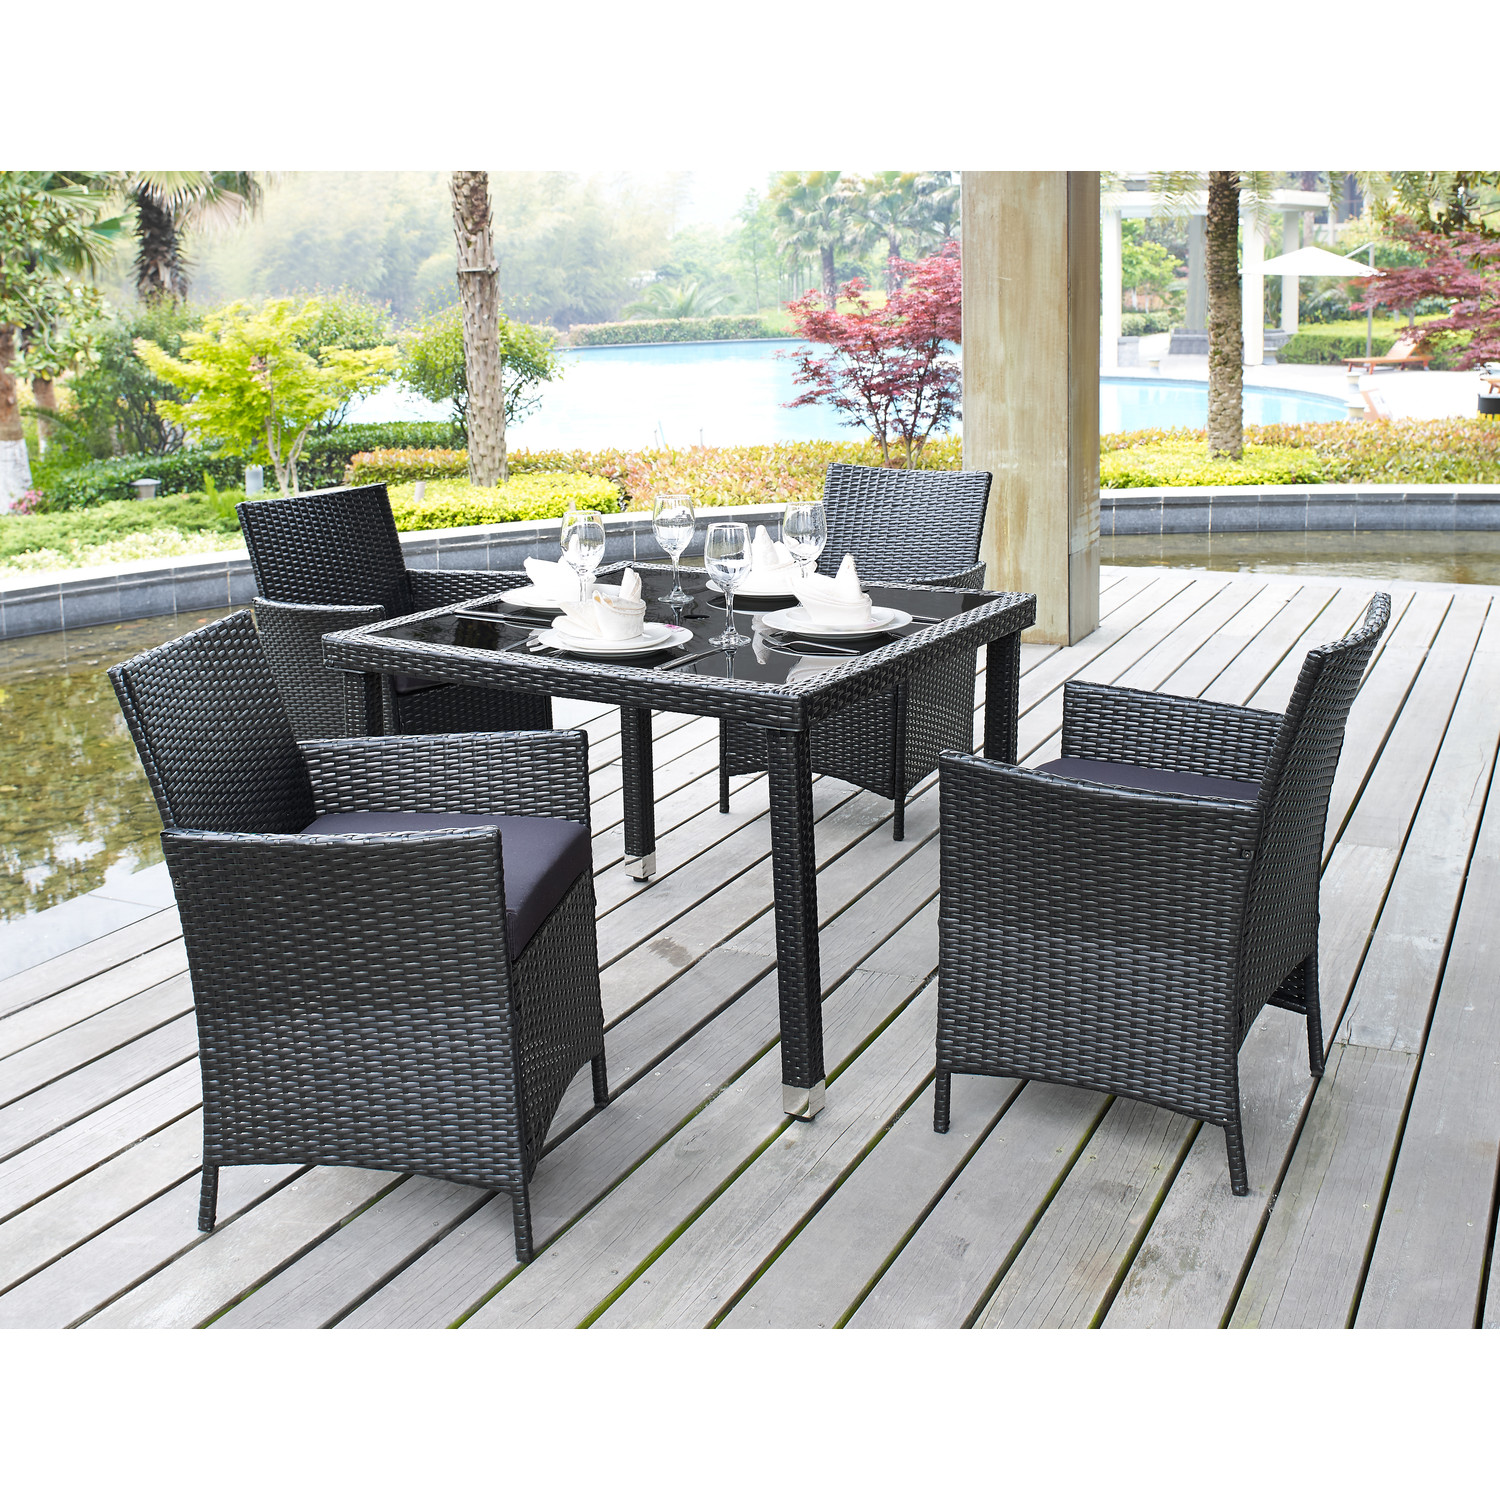 Places To Go For Affordable Modern Outdoor Furniture ... on Modern Backyard Patio id=13435